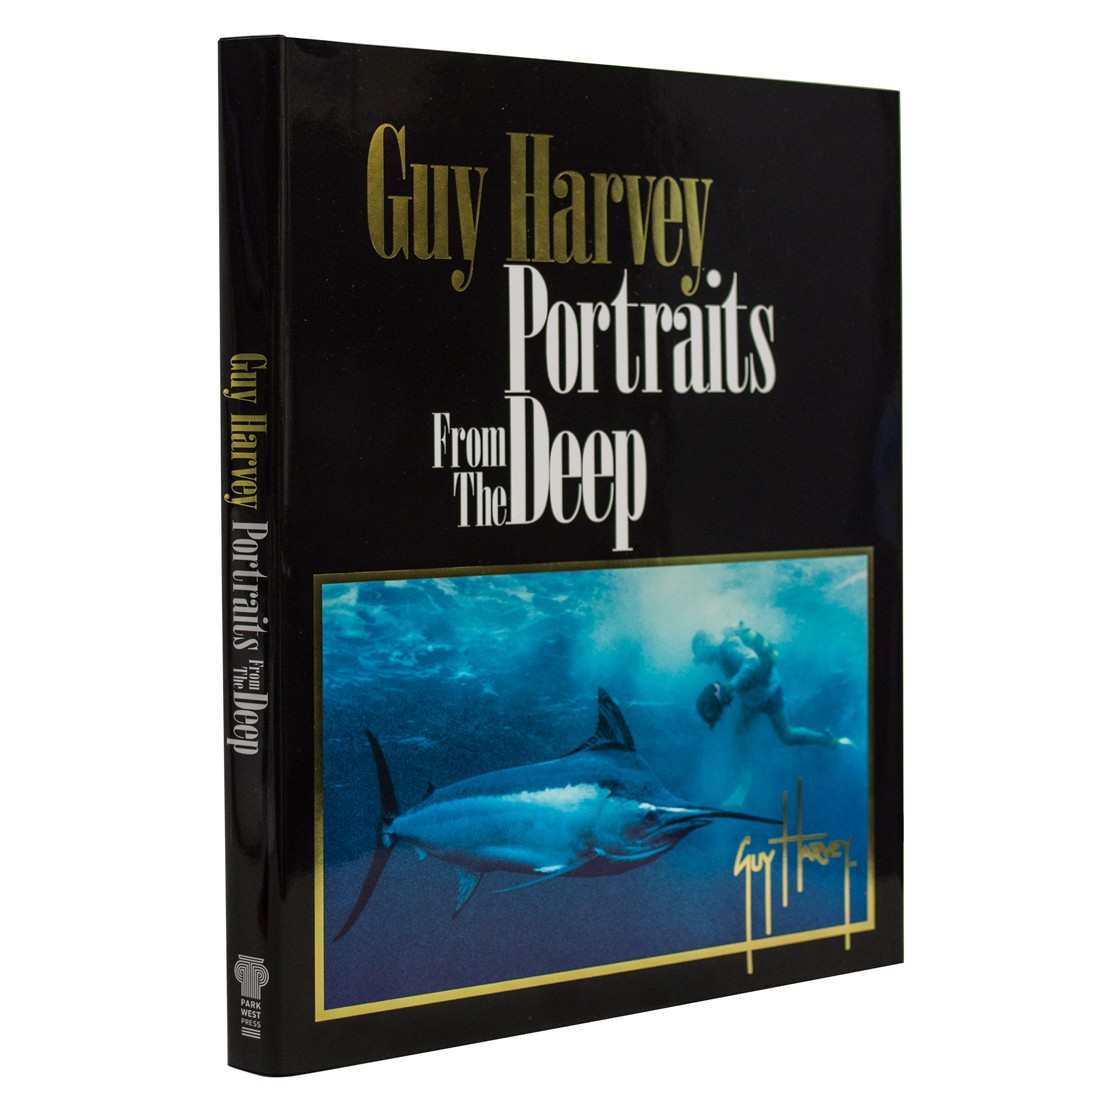 Portraits From The Deep by Guy Harvey